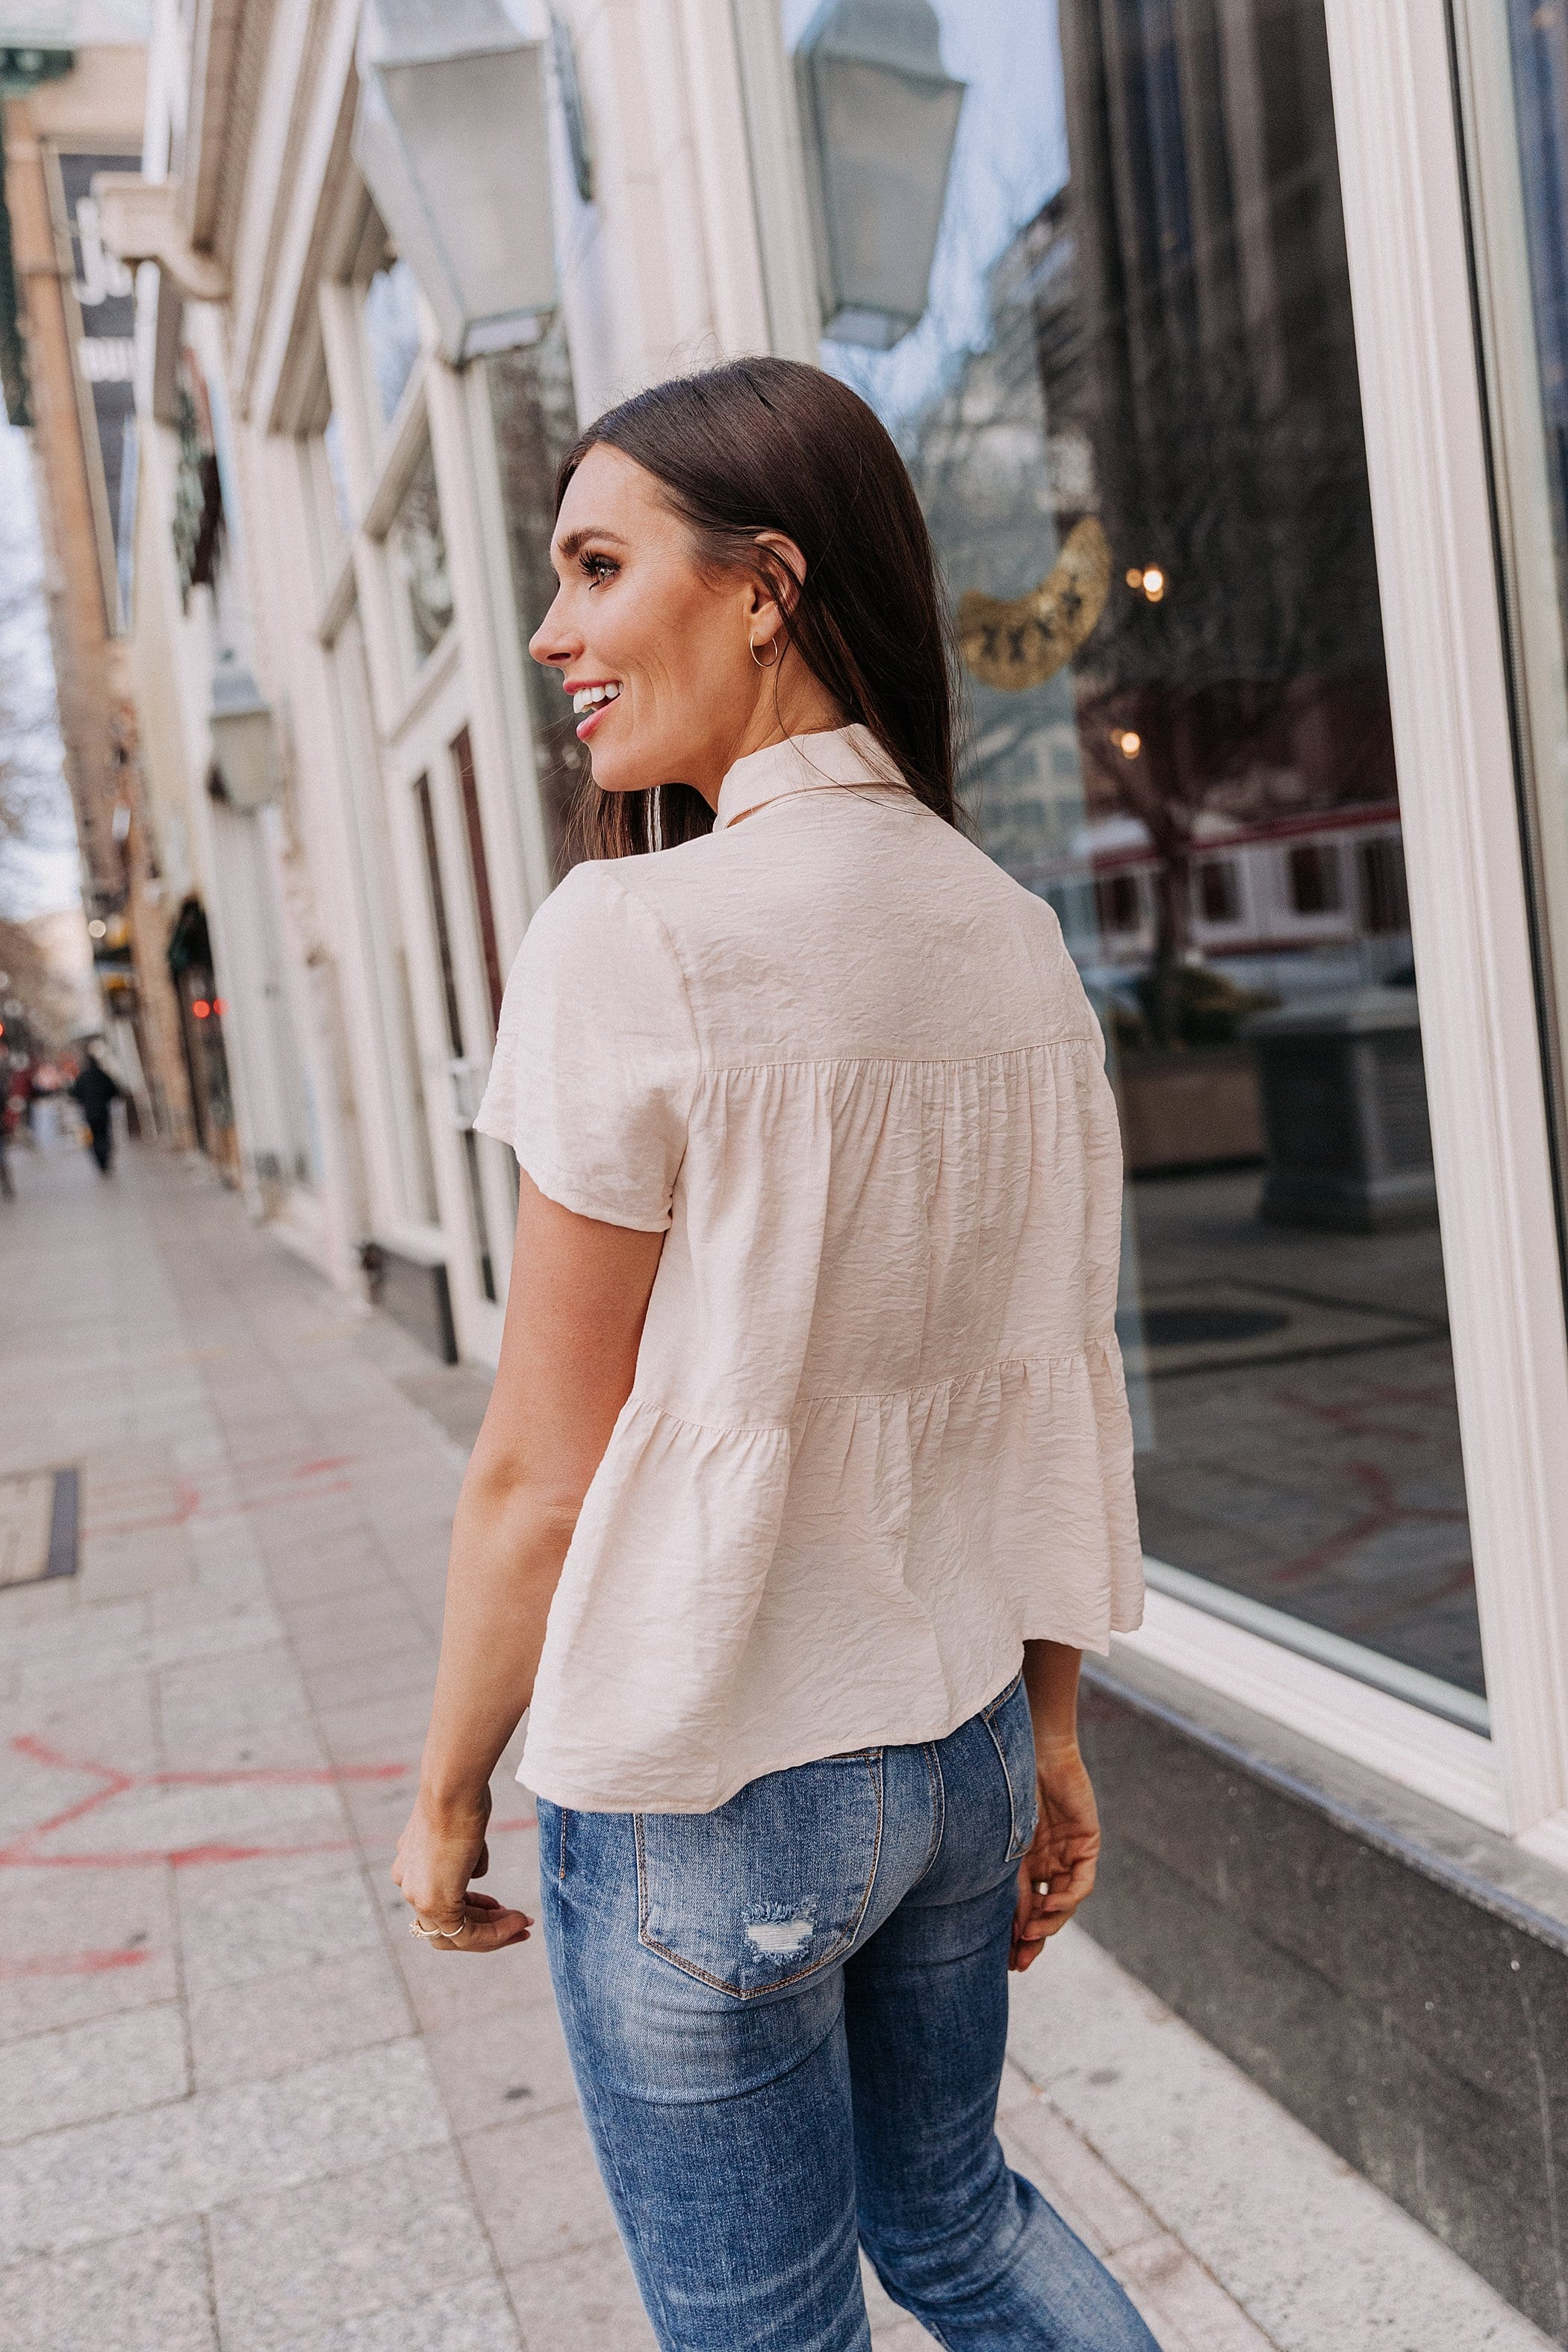 The Joye Button Down Top in Cream